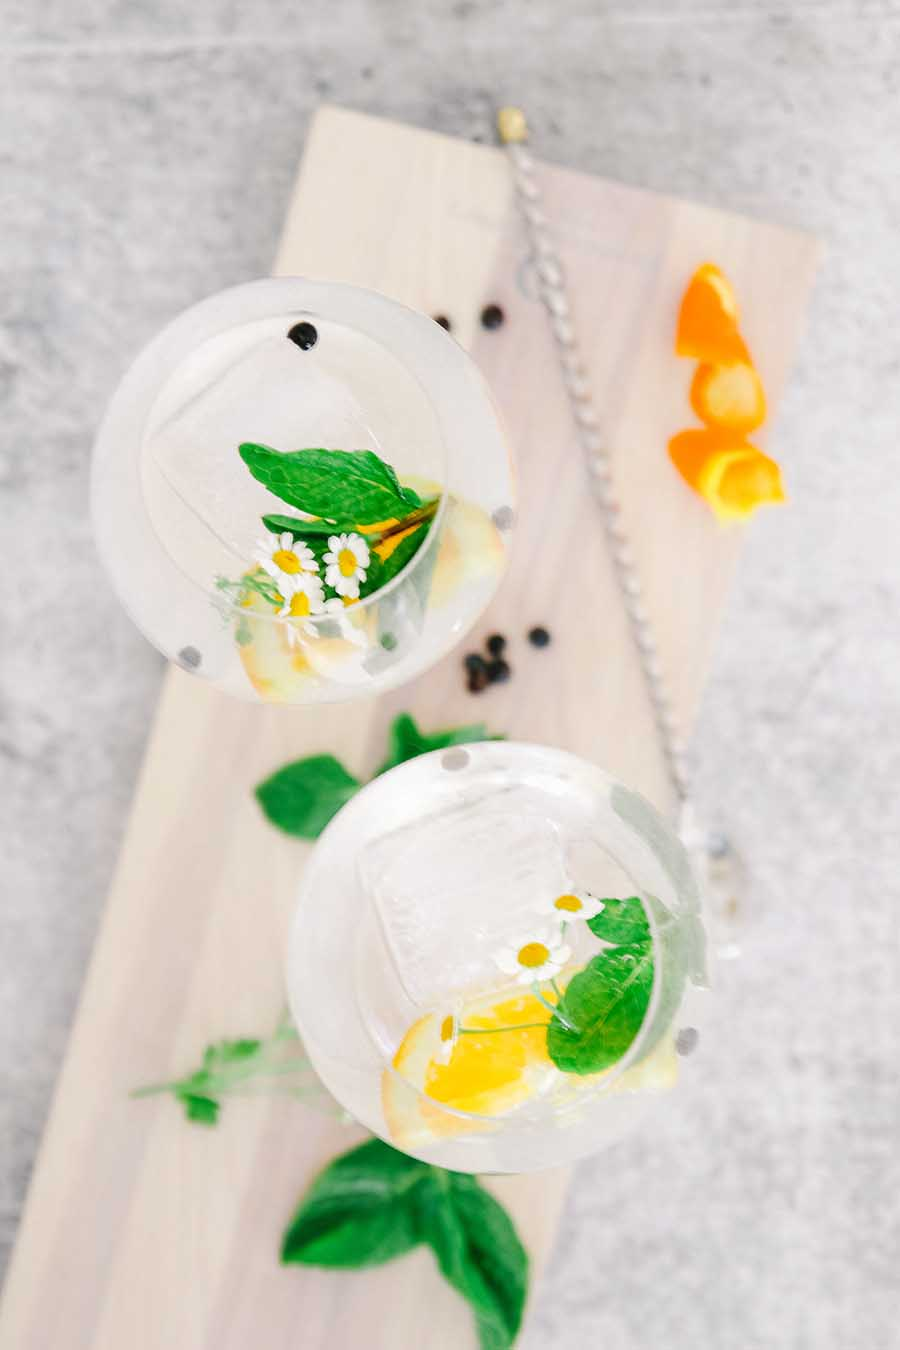 The best gin and tonic recipe